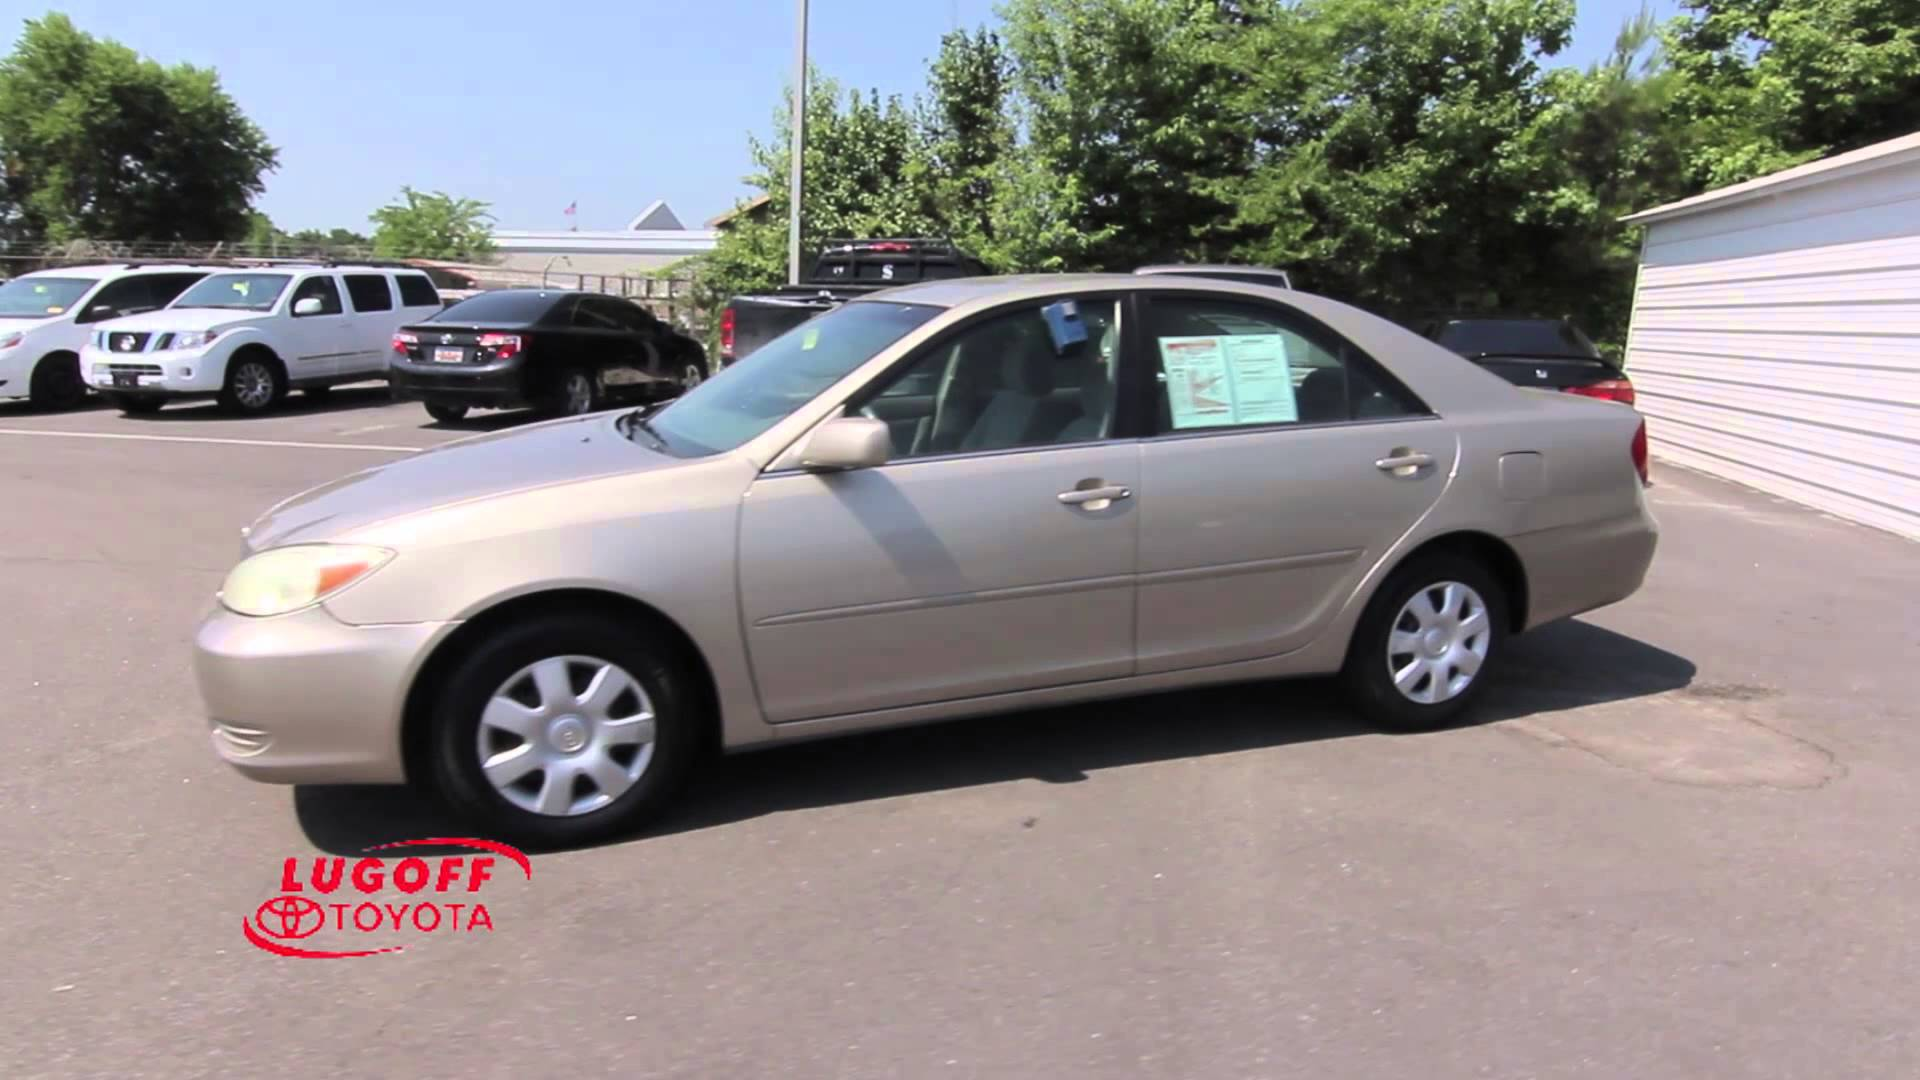 used cars columbia sc x a 2004 toyota camry lugoff toyota